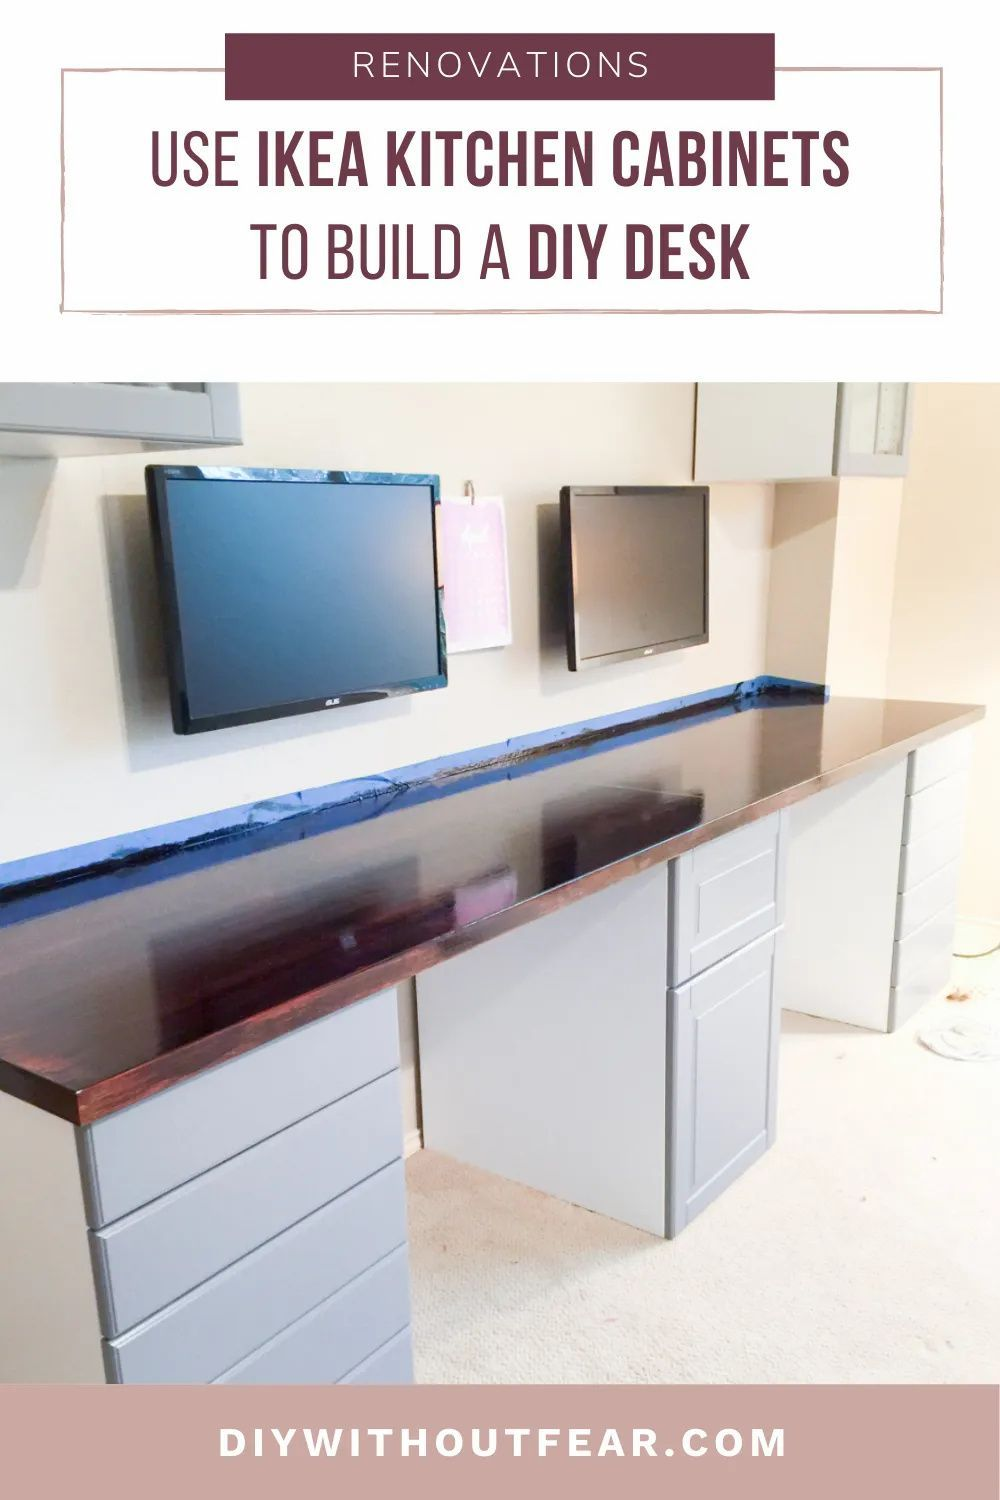 How To Make A Desk From Kitchen Cabinets Part Two Diy Without Fear In 2020 Ikea Kitchen Cabinets Ikea Kitchen Kitchen Cabinets